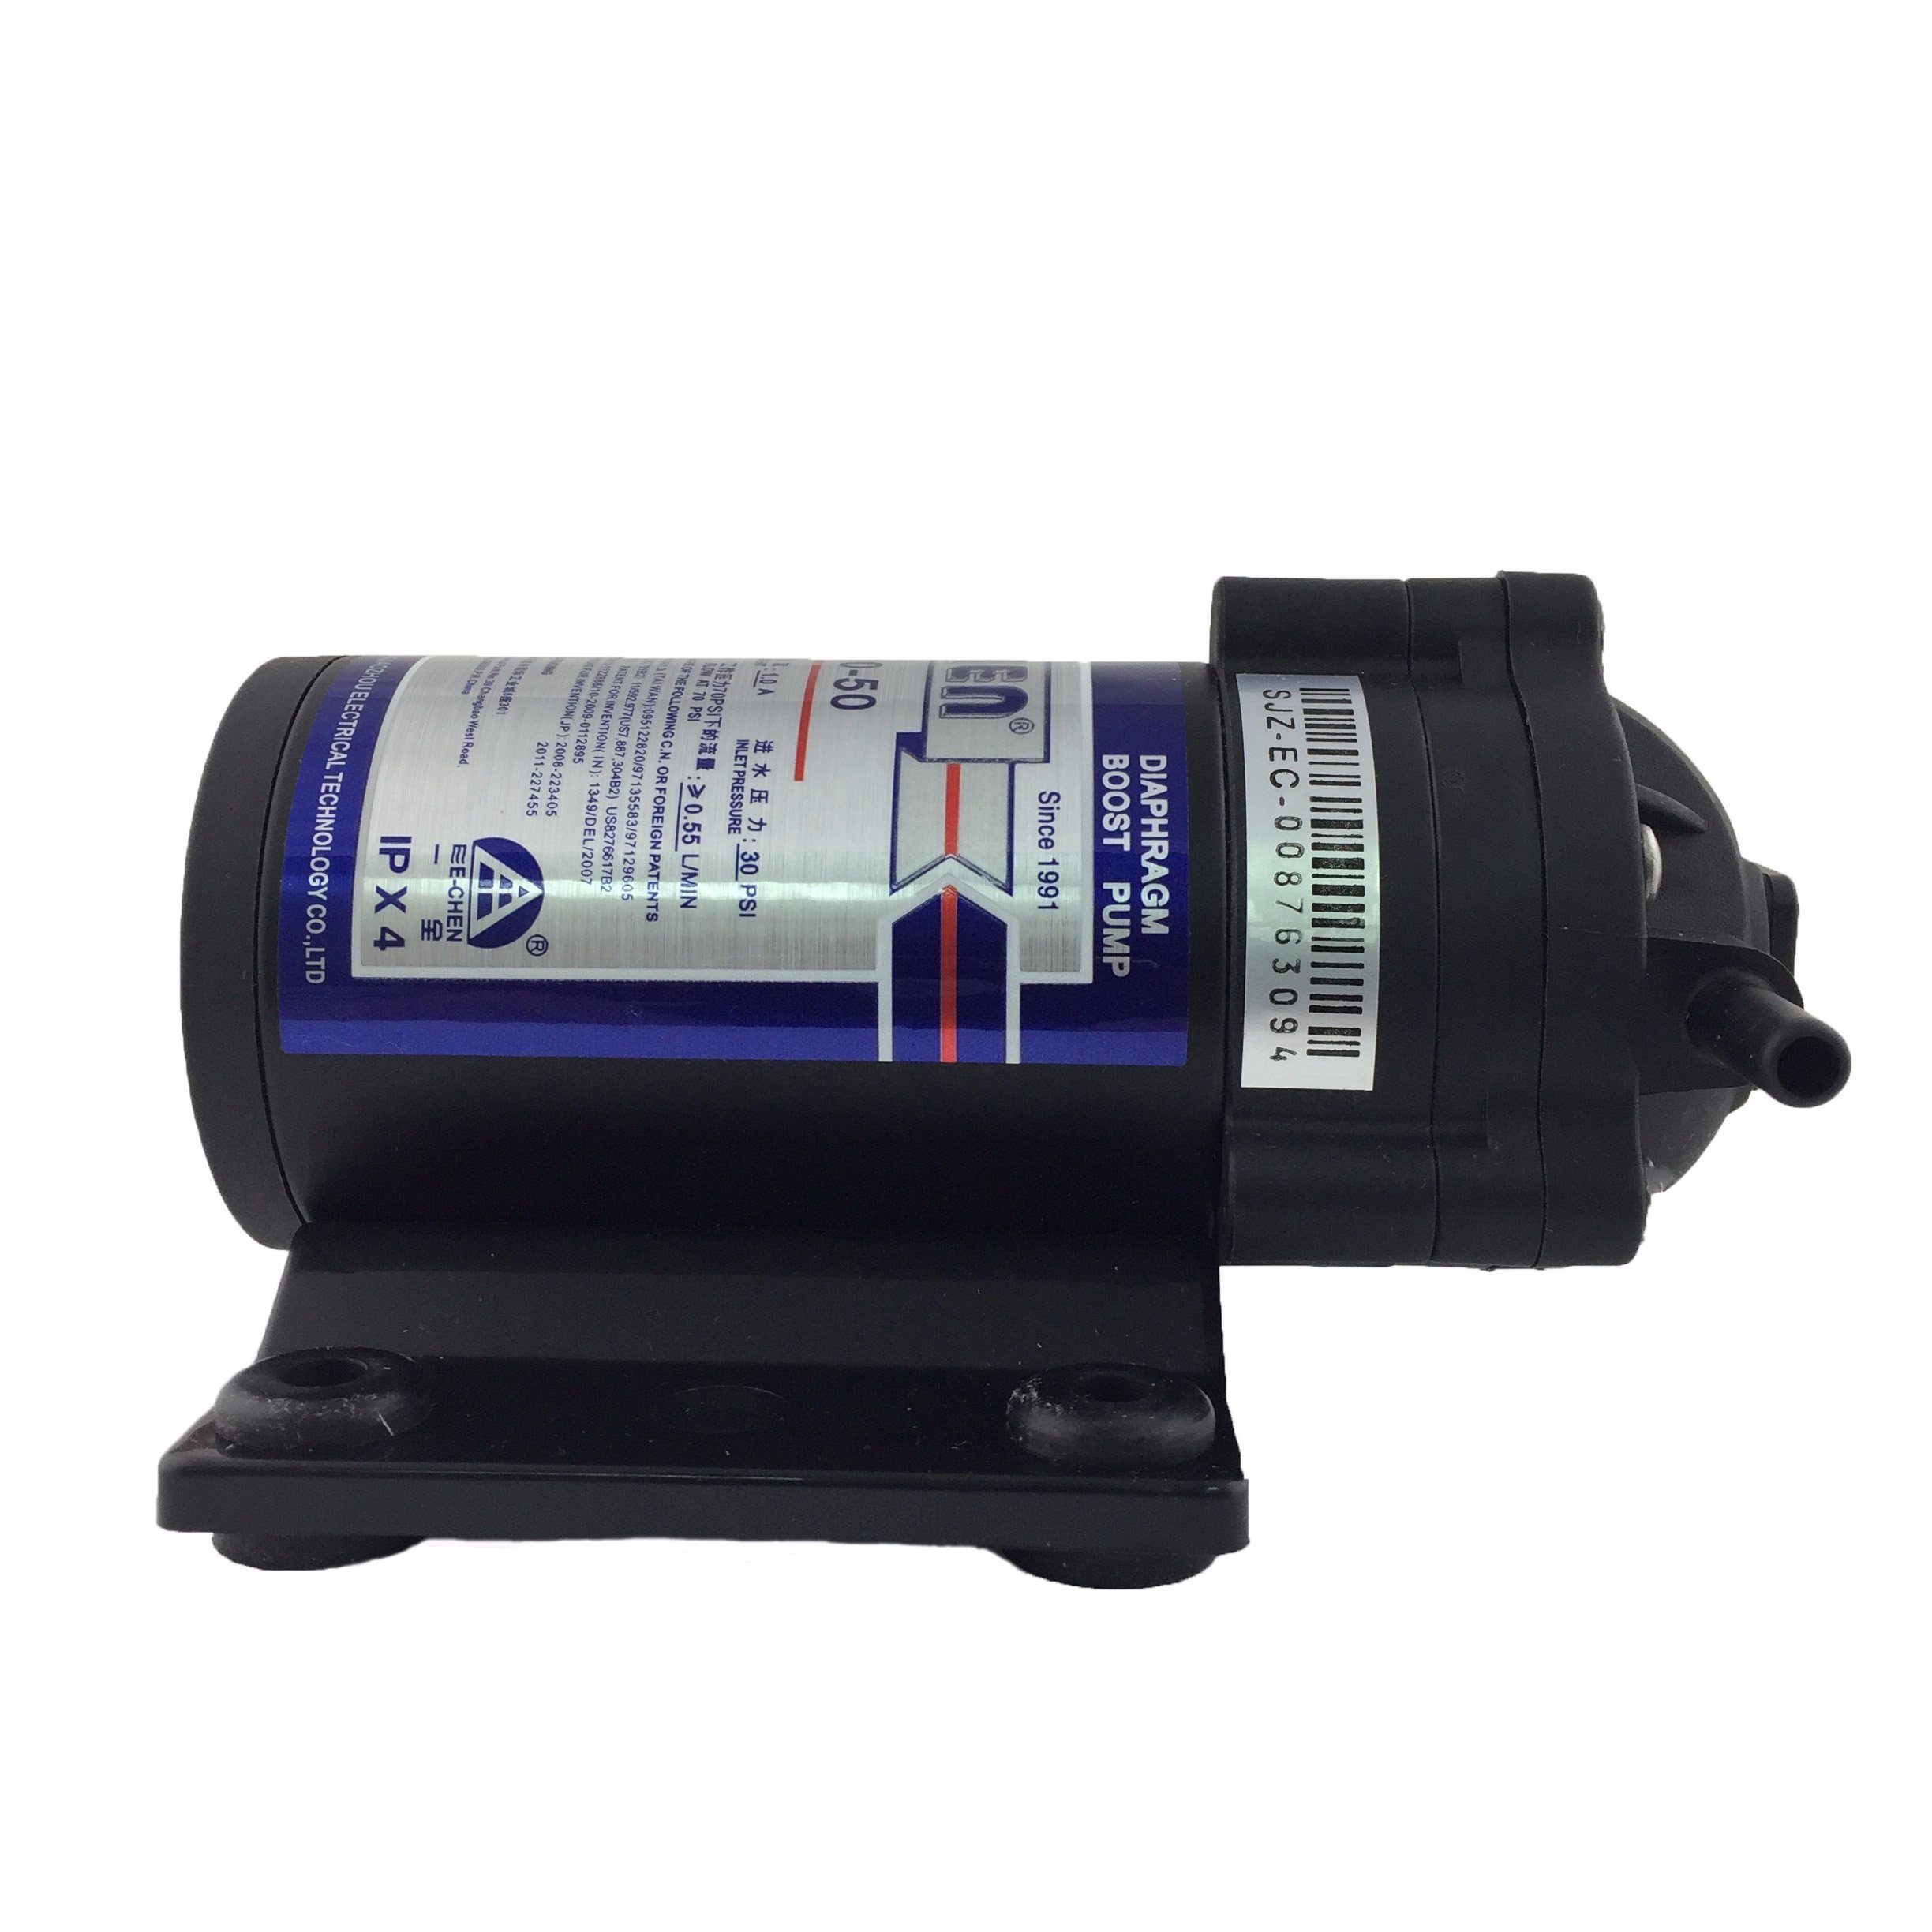 The Smallest Diaphragm RO Booster Pump 800 Series 75gpd